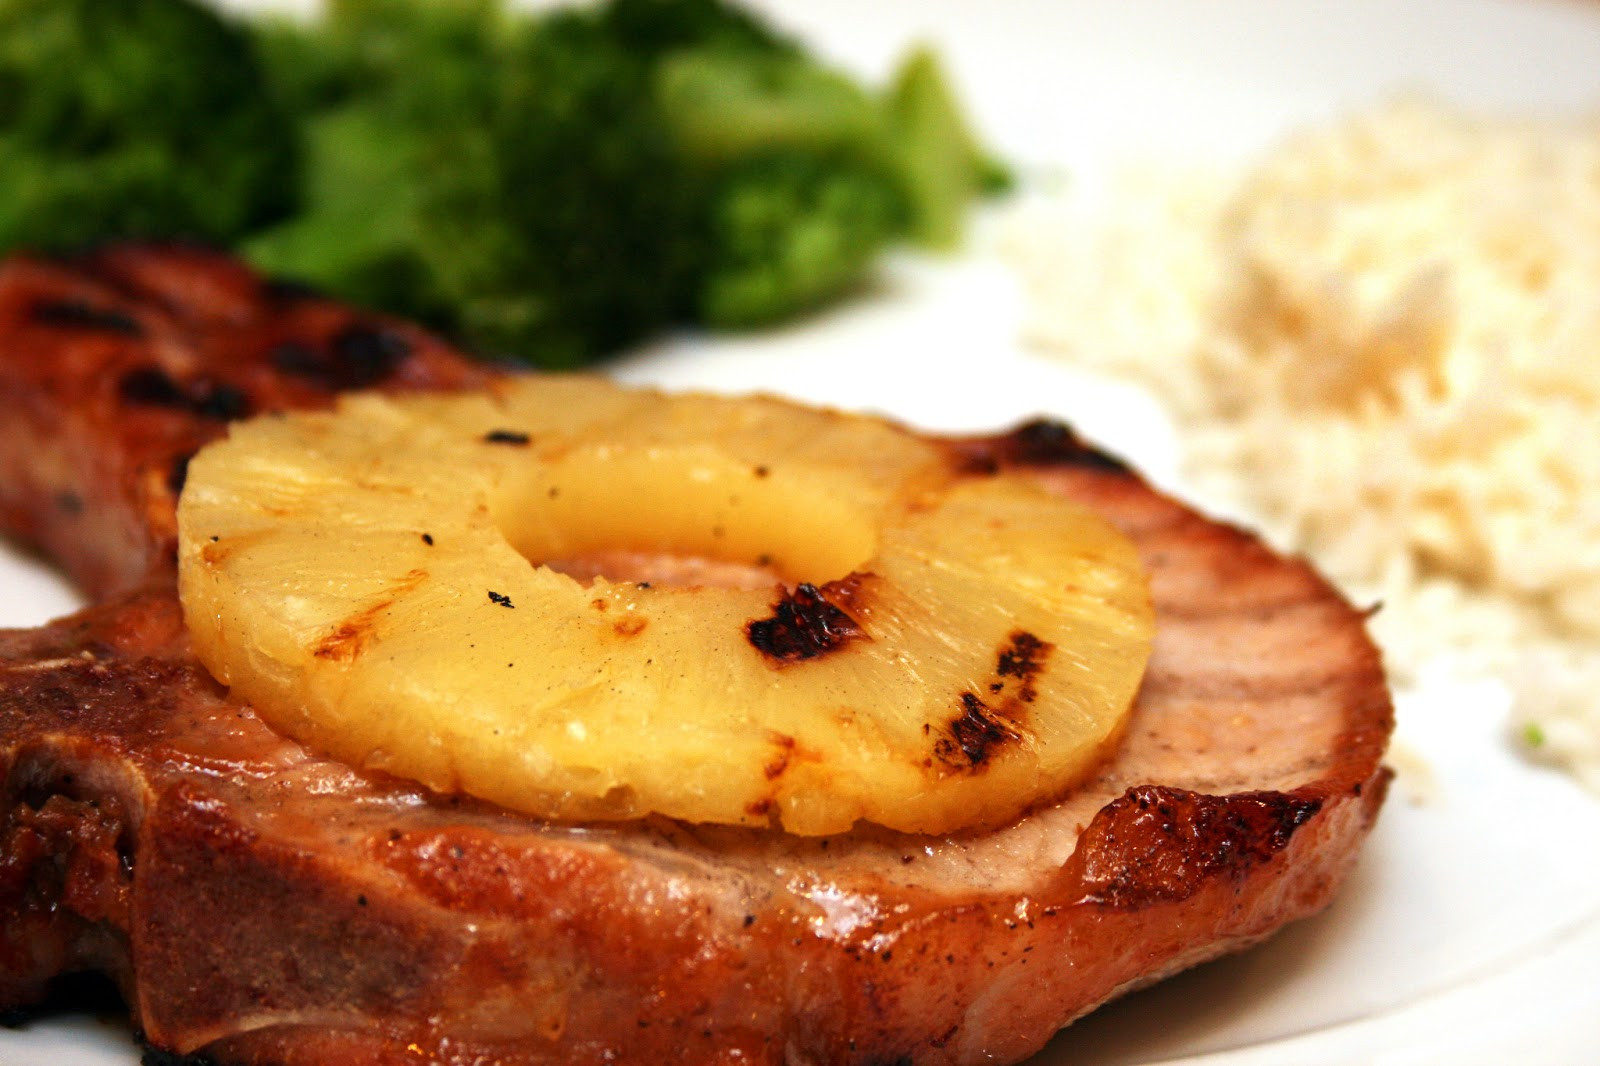 Grill Pork Chops Time  Lazy Gluten Free Grilled Pineapple Pork Chops